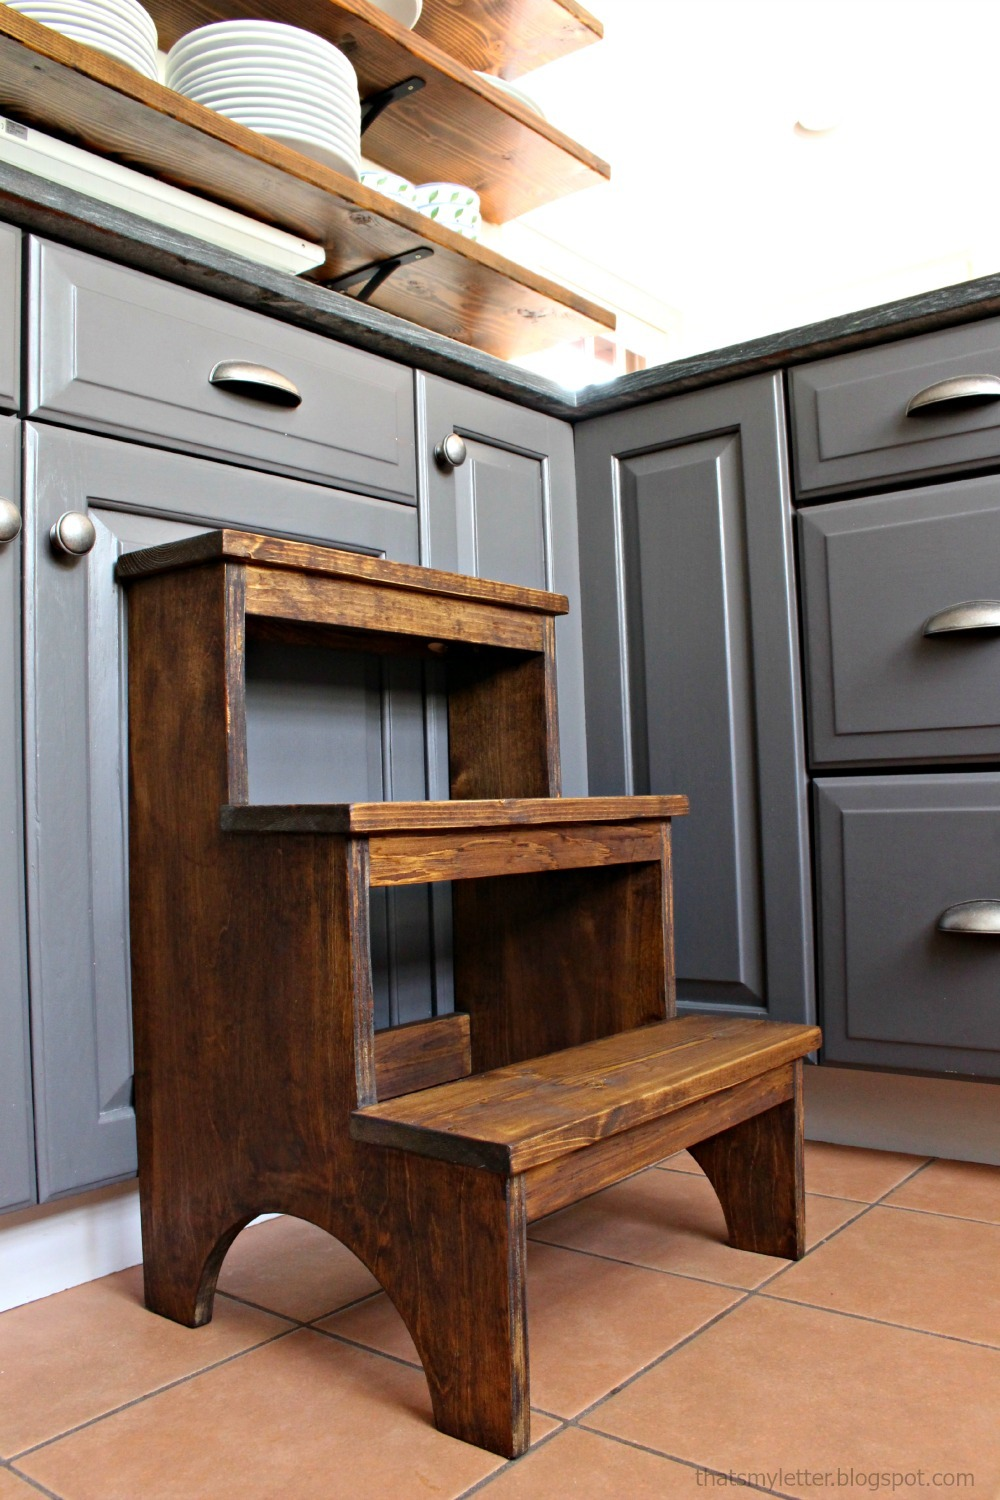 KITCHEN STEP STOOL - RYOBI Nation Projects